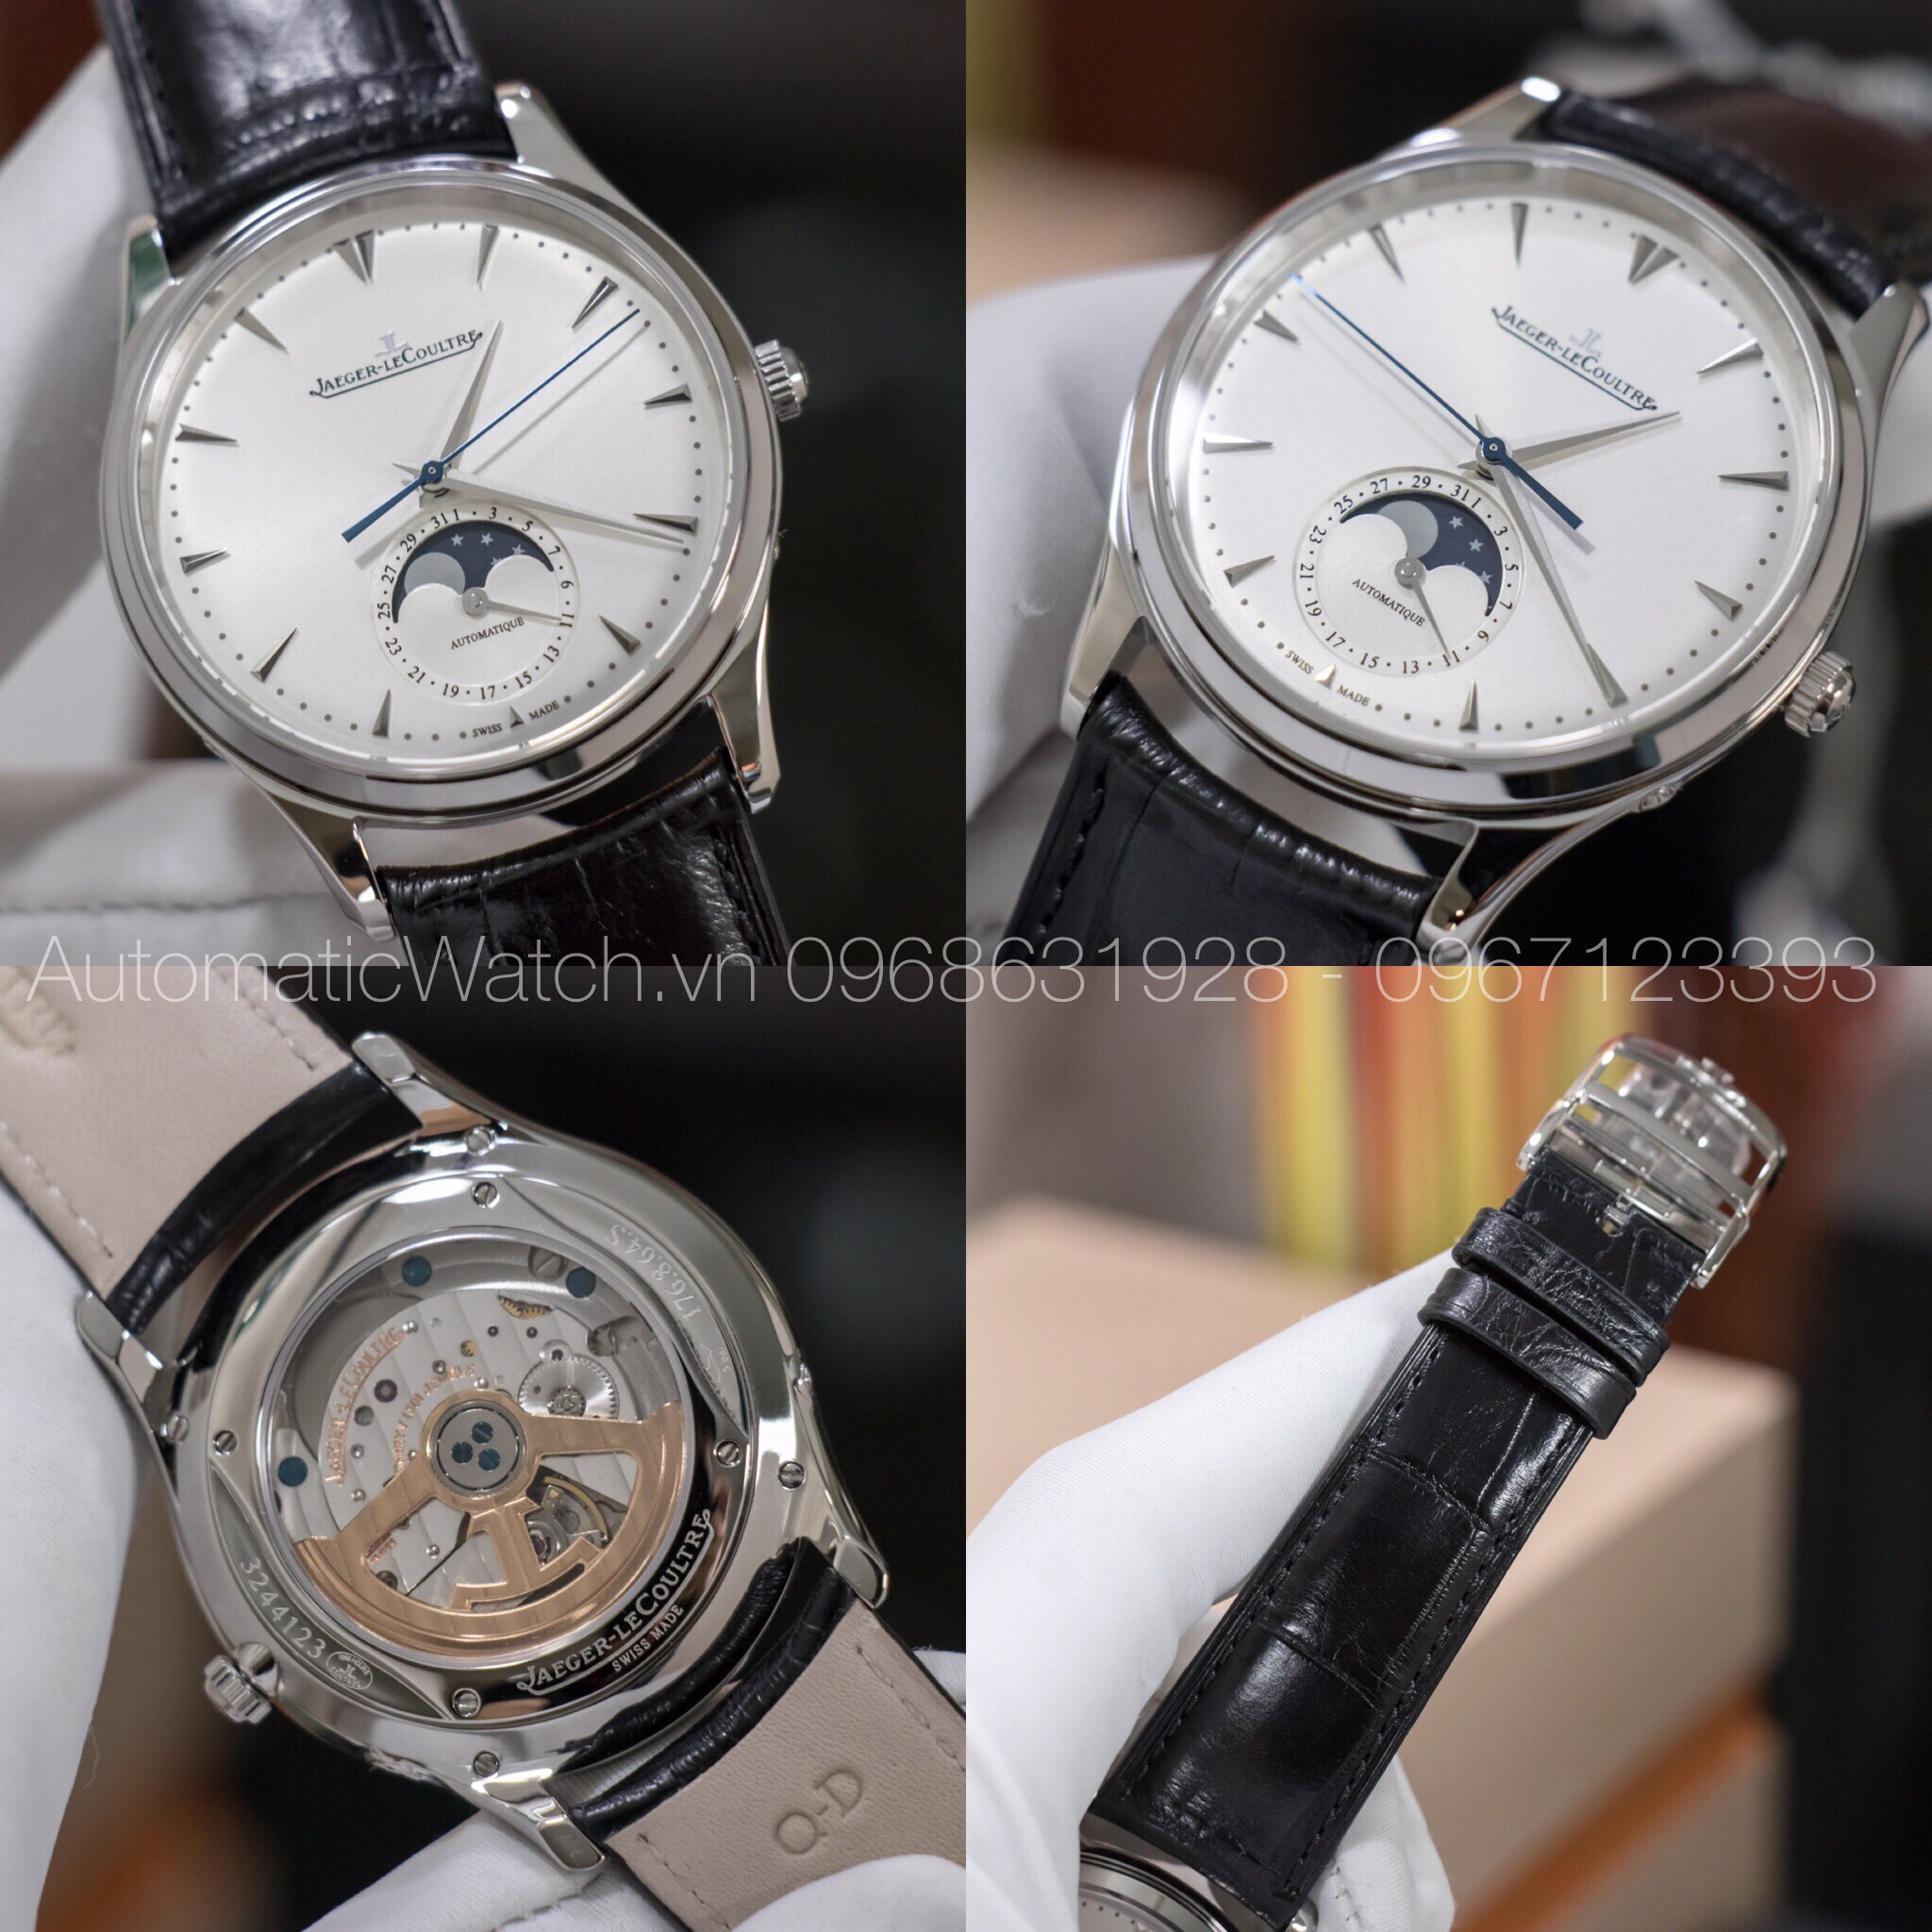 Jaeger-LeCoultre Master Ultra-Thin Moon